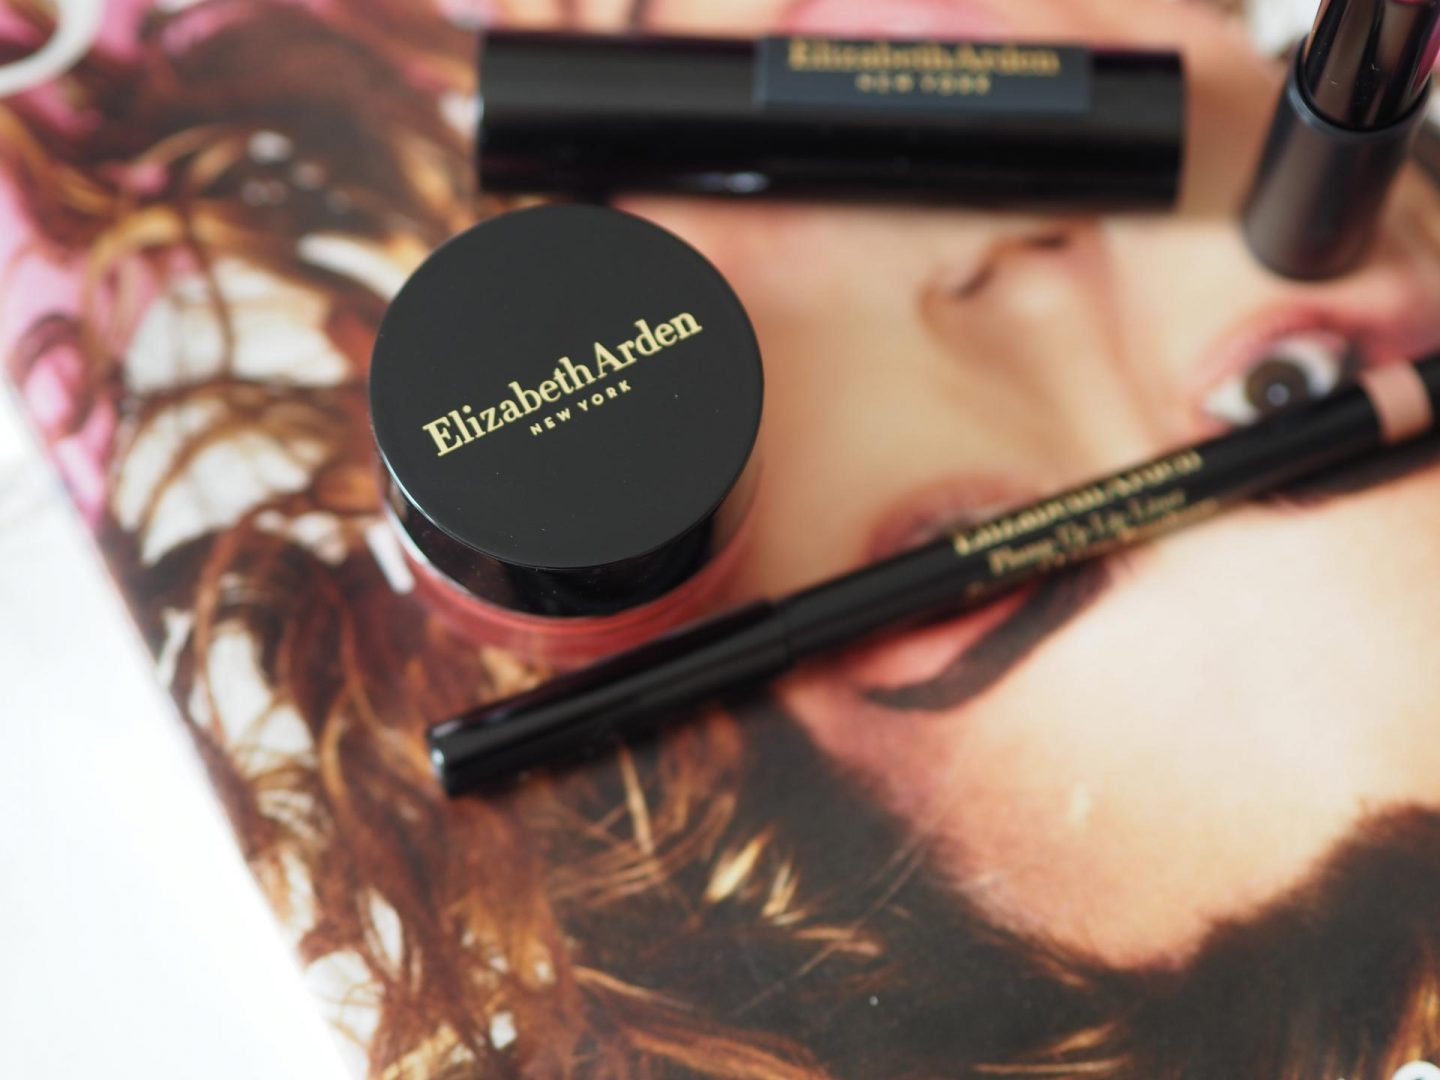 Beauty Haul - Product: Elizabeth Arden